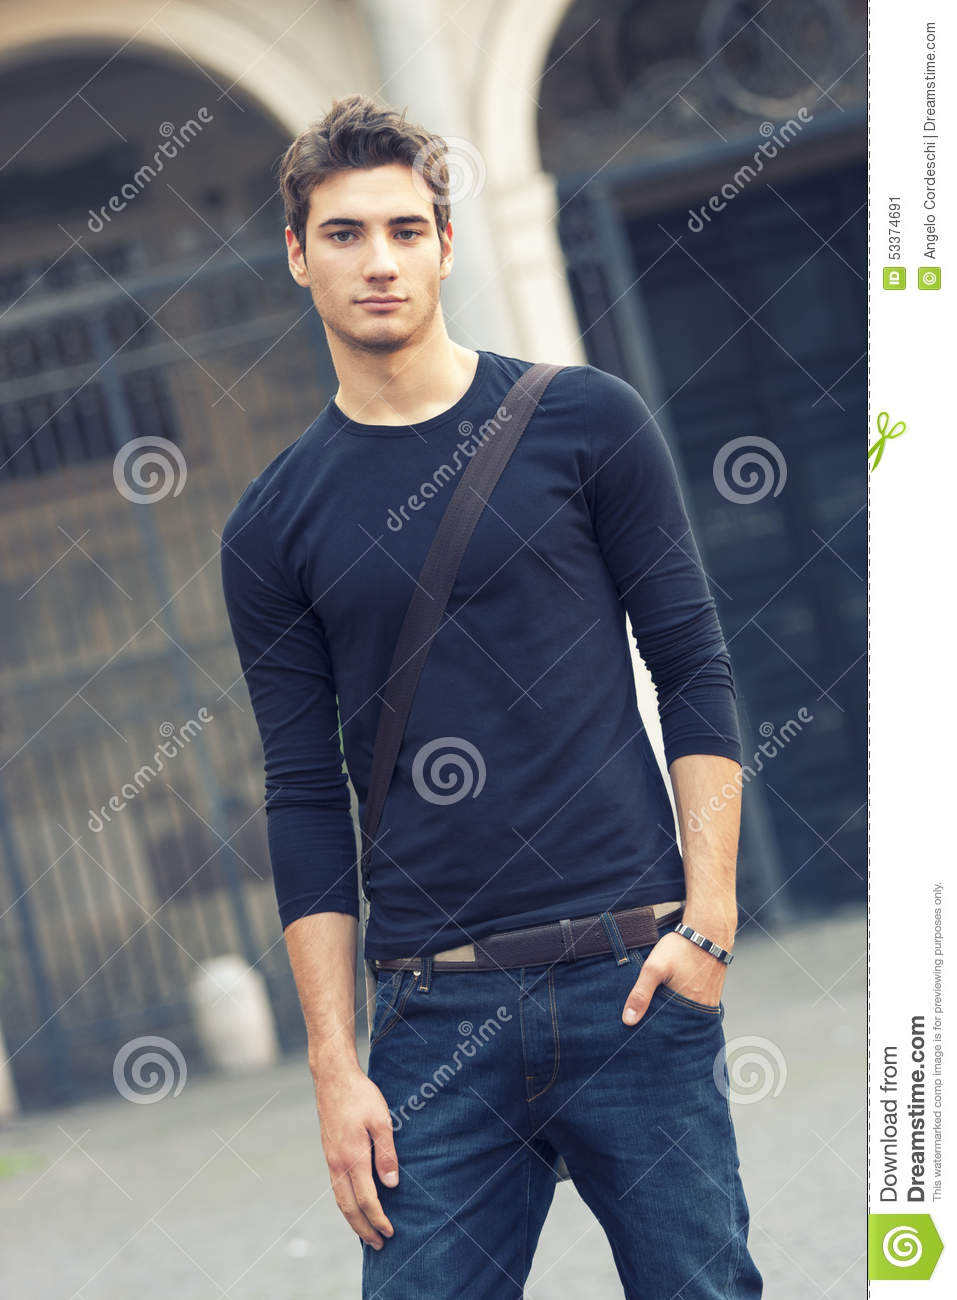 beautiful man model outdoor with casual outfit stock image - image